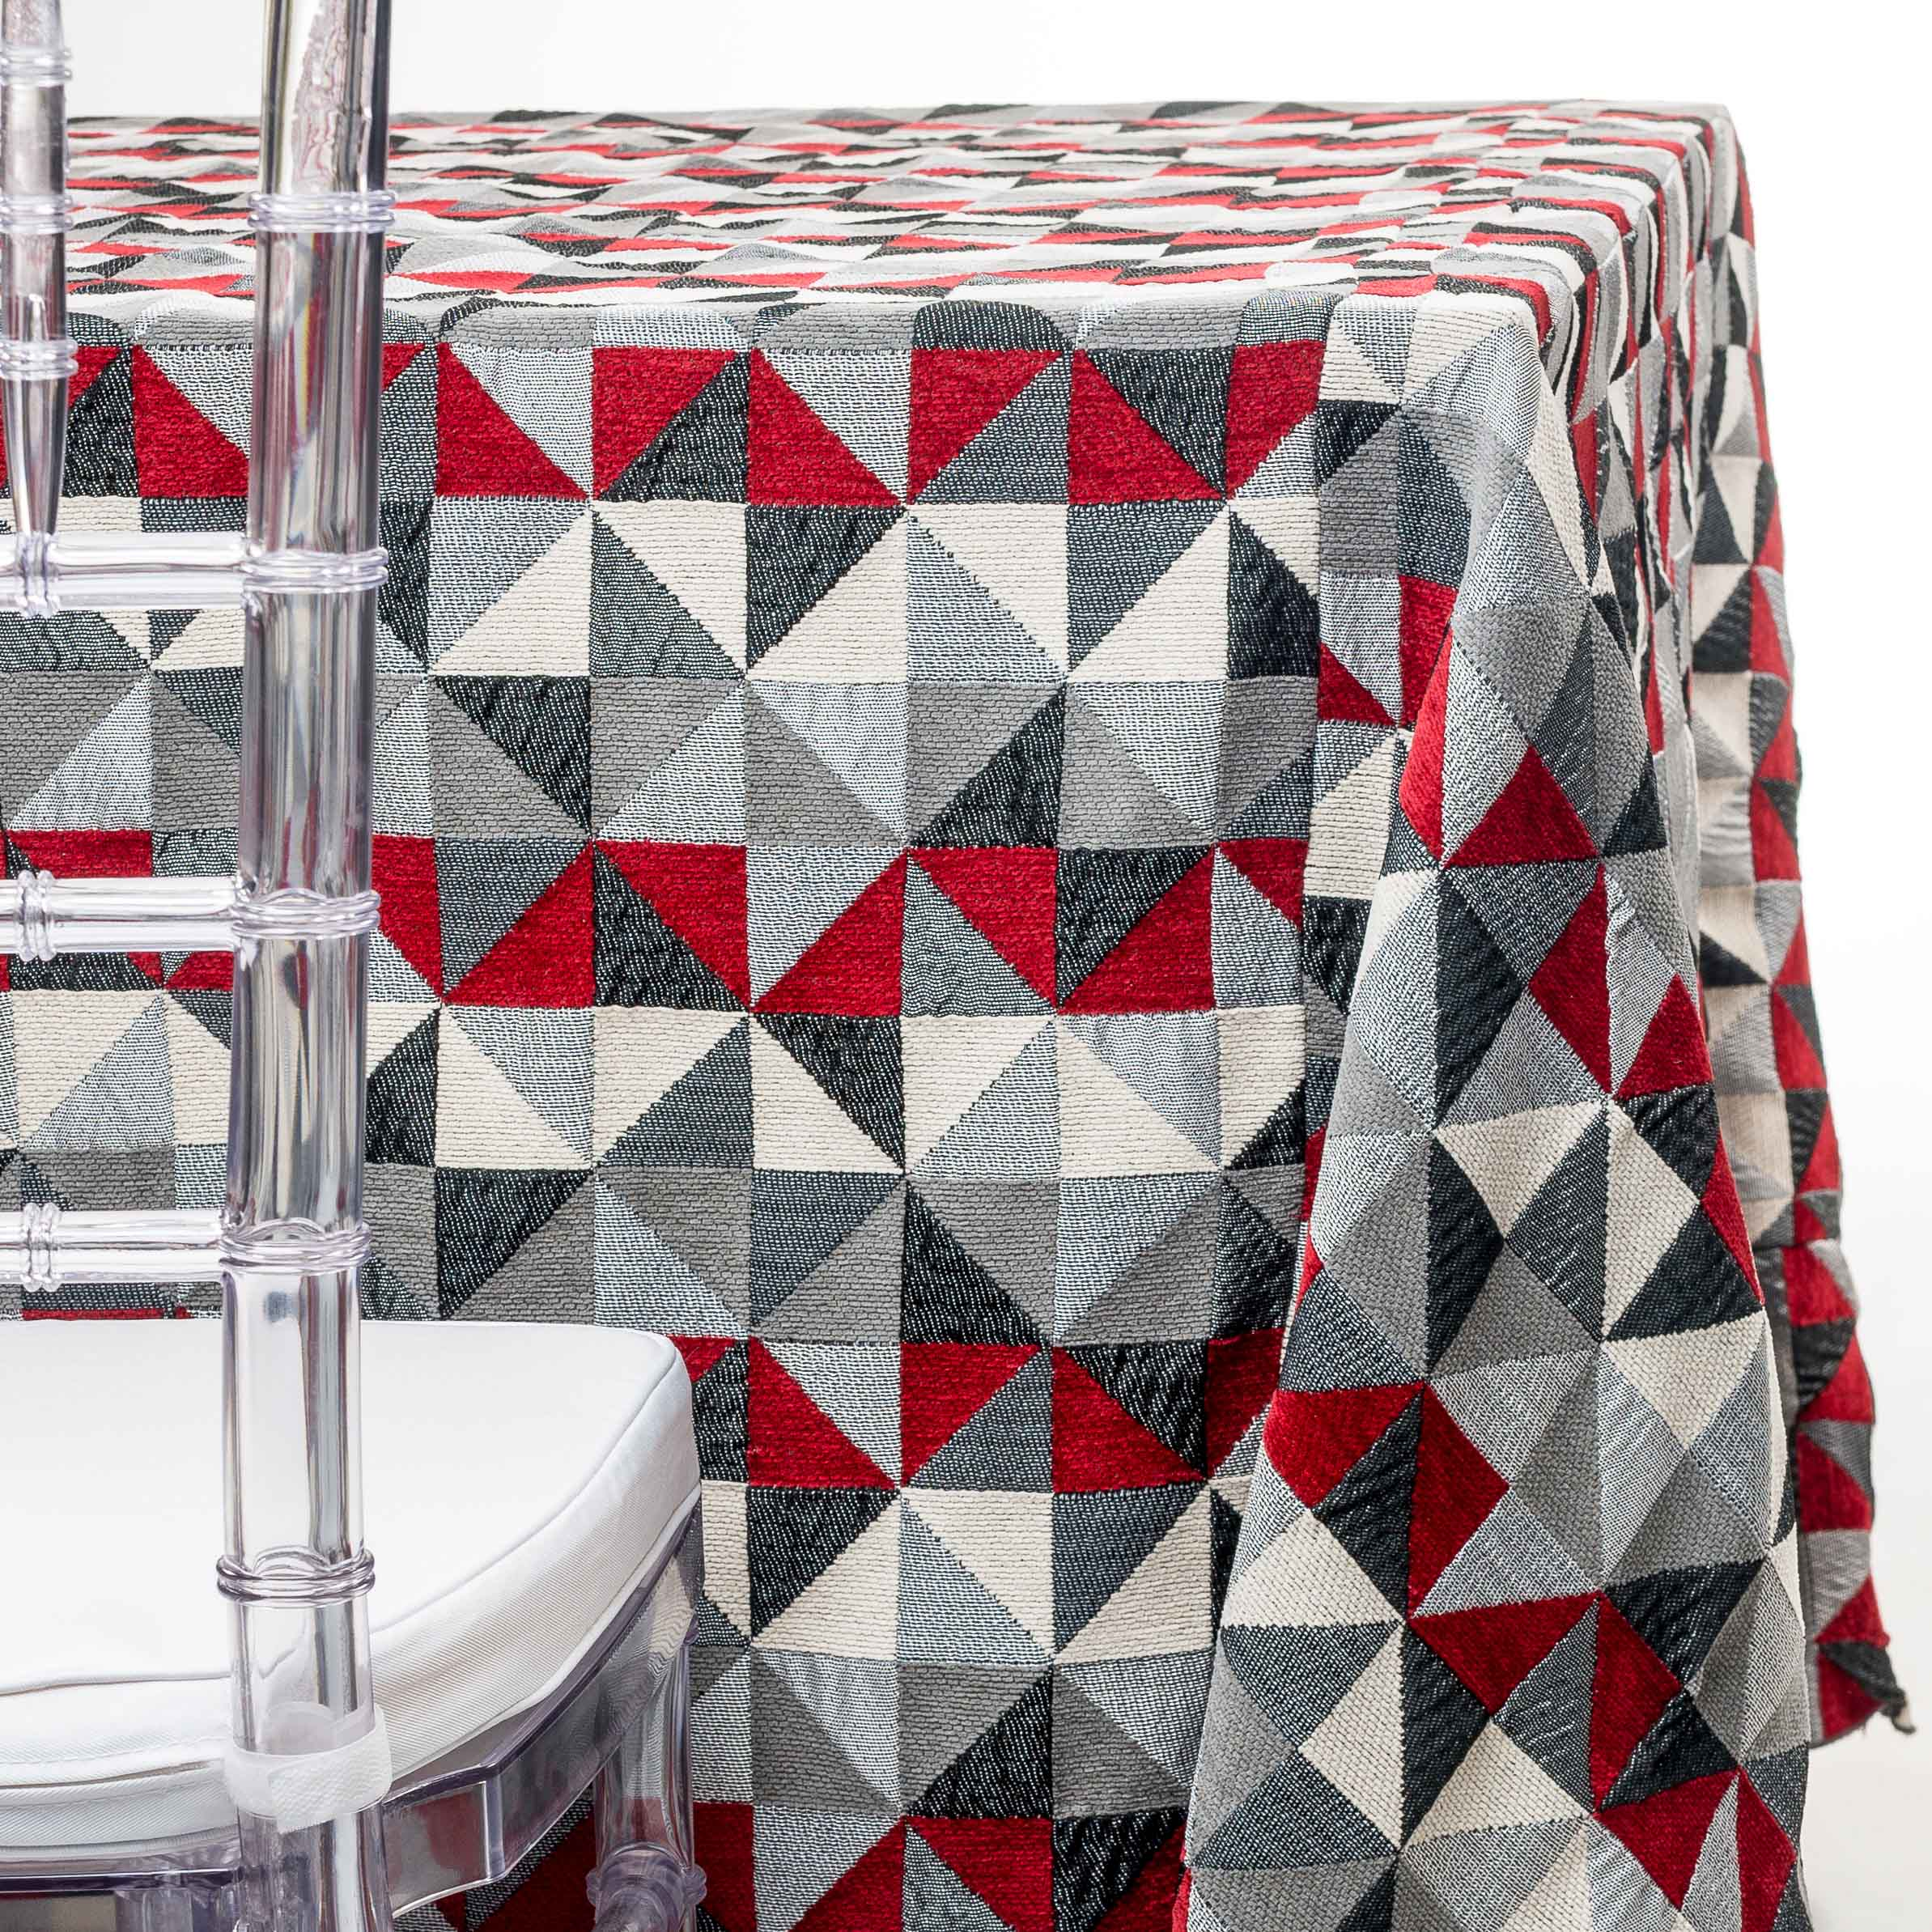 red triangles tablecloth rentals in New Jersey. For weddings or parties. Tablecloth and napkin rentals by Chaya Sara Thau